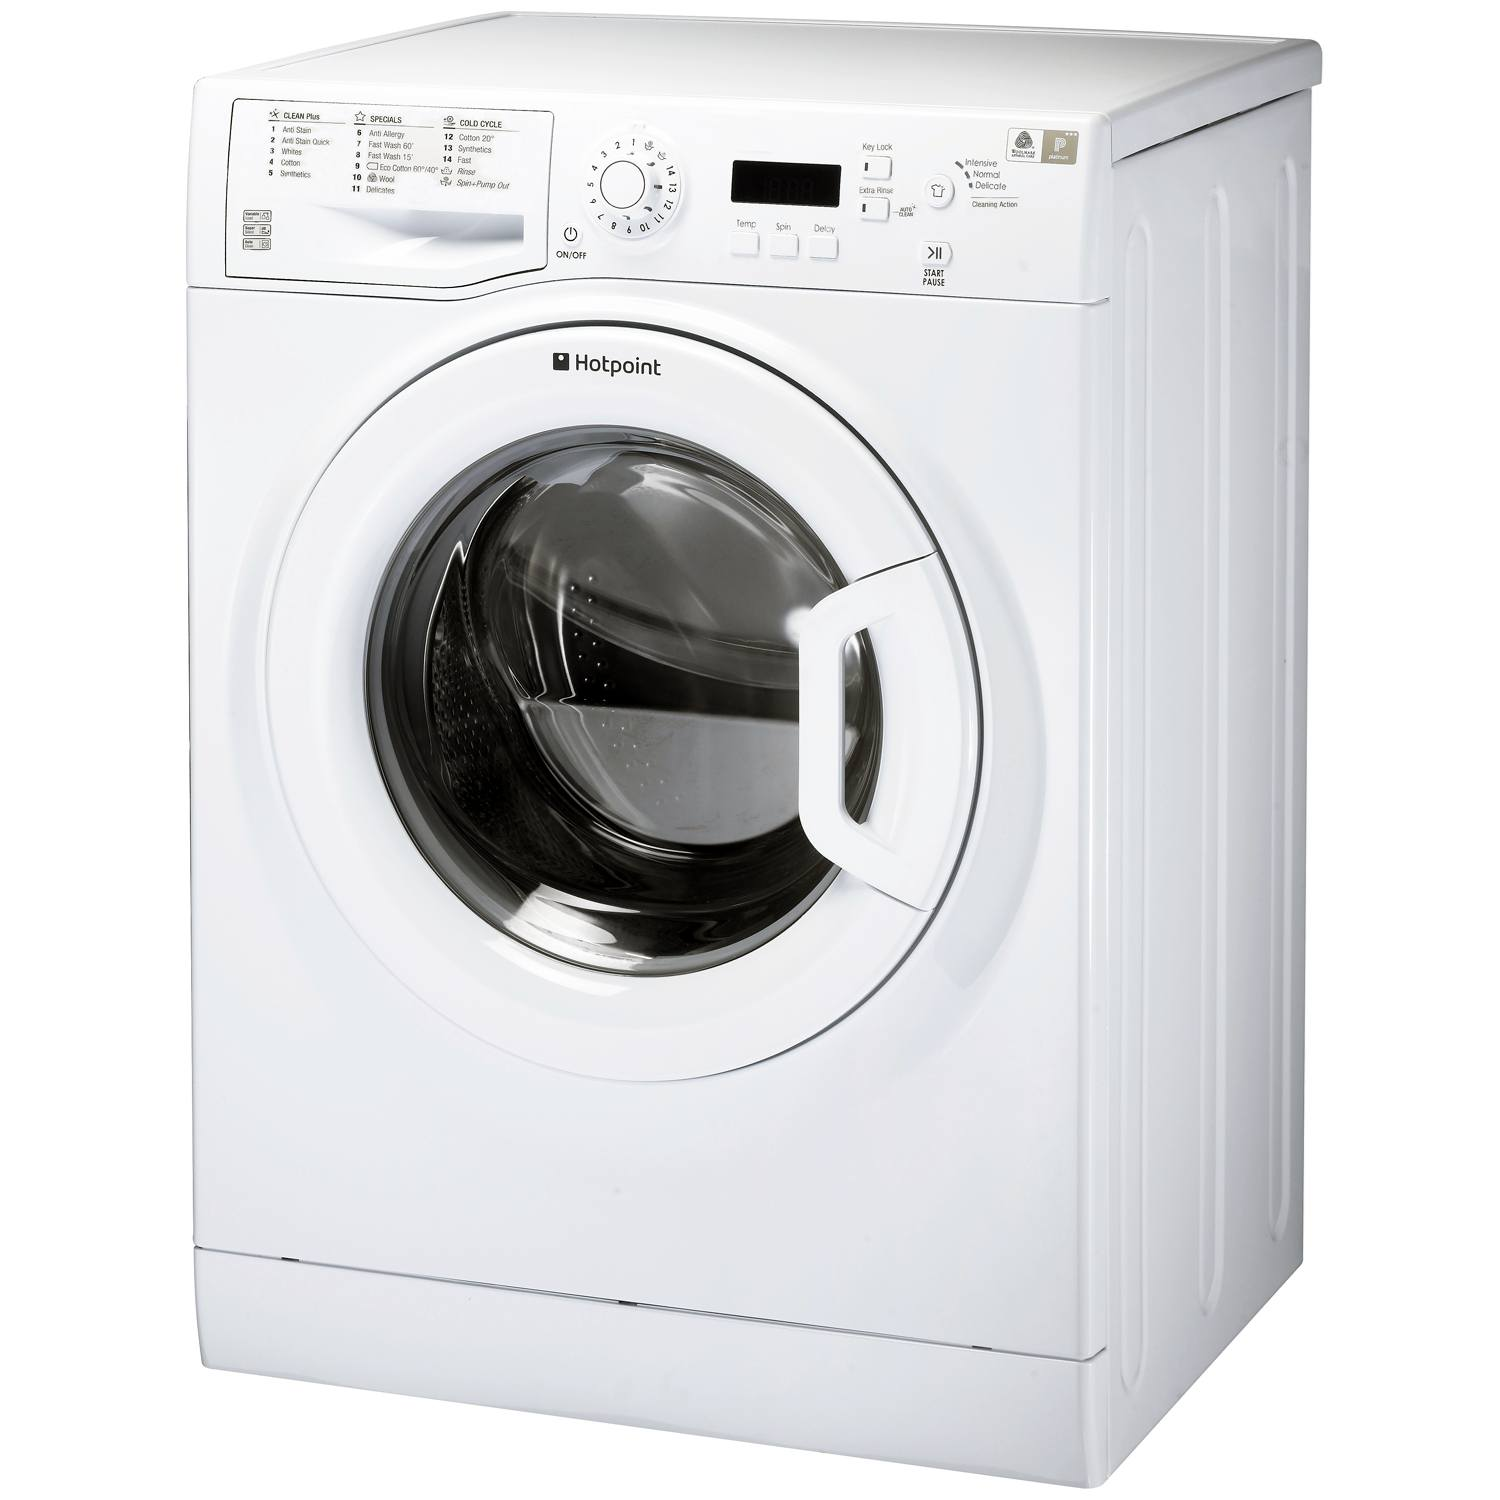 Washing Machines: Hotpoint Futura WMBF763P Freestanding A+++ 7kg 1600 Spin